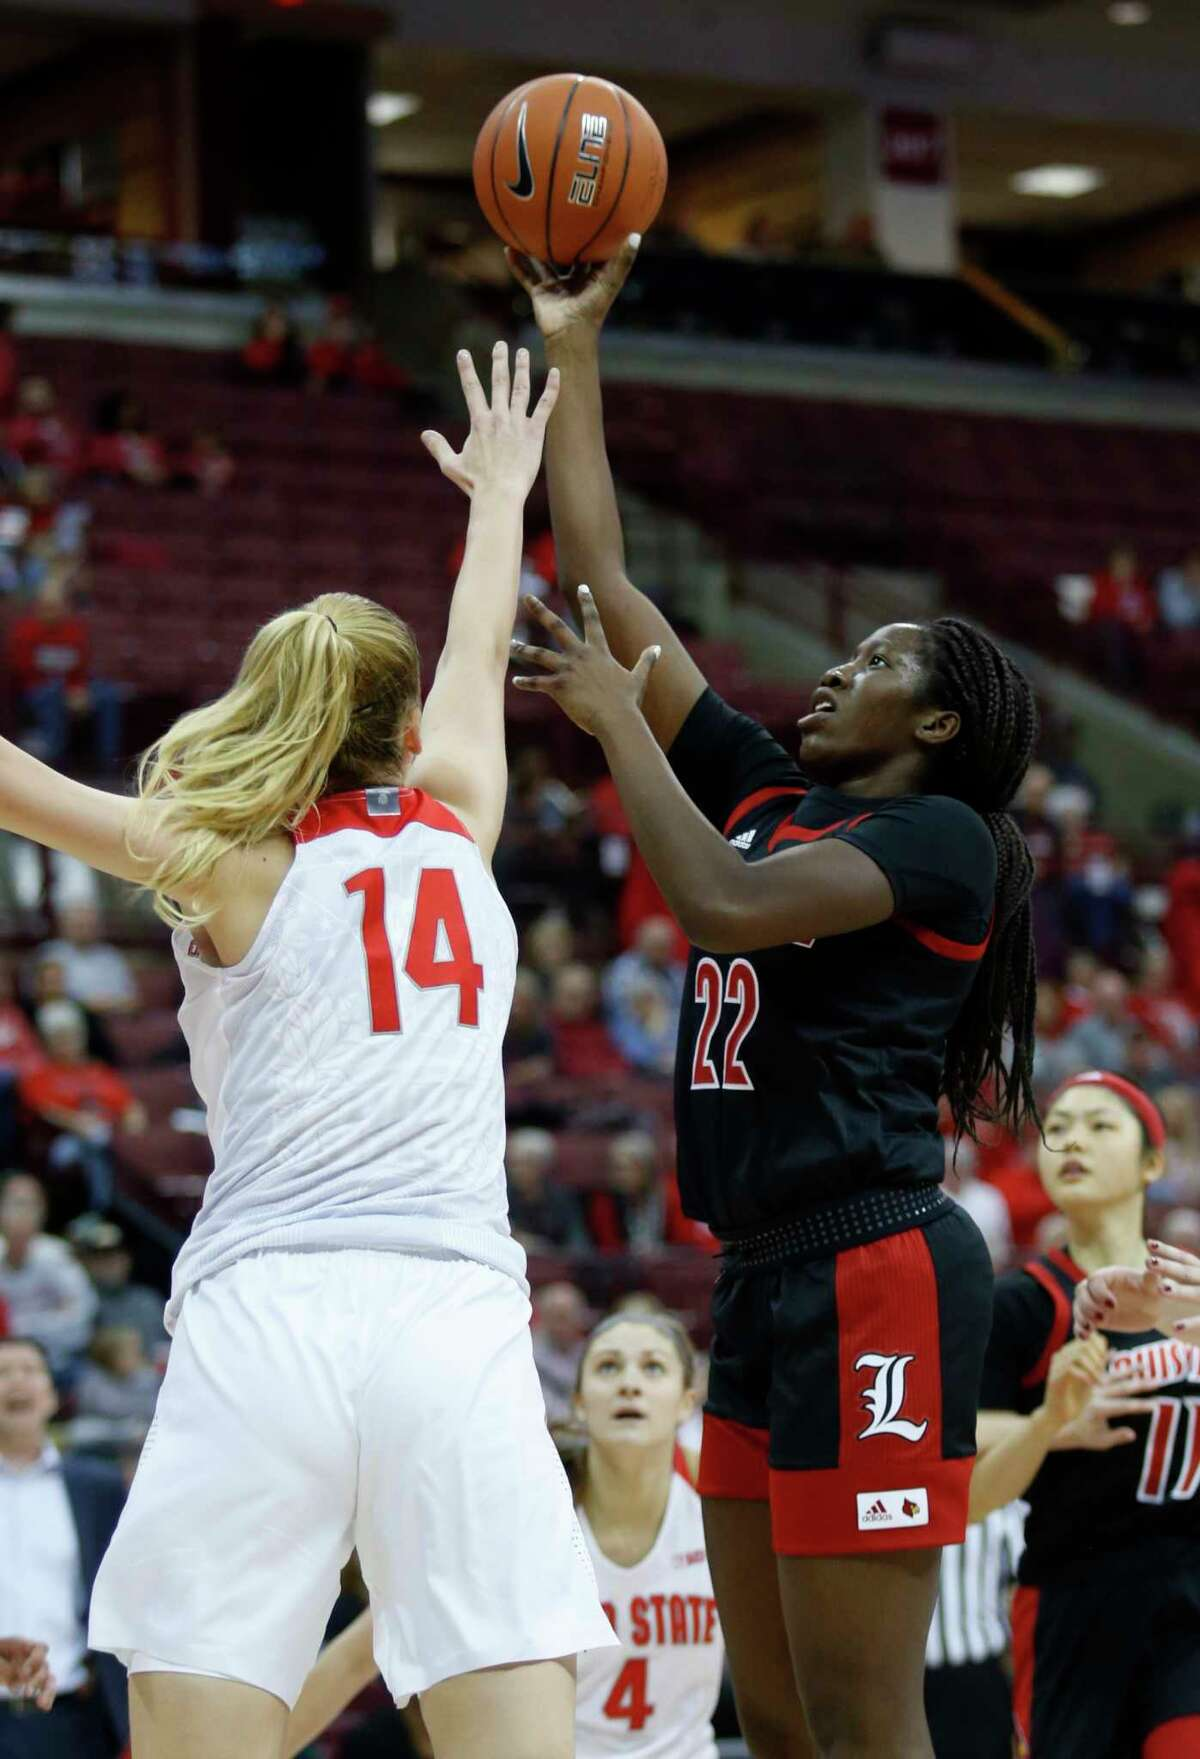 Louisville forward Elizabeth Dixon, right, goes up for a shot in front of Ohio State forward Dorka Juhasz during the first half of an NCAA college basketball game in Columbus, Ohio, Thursday, Dec. 5, 2019. (AP Photo/Paul Vernon)